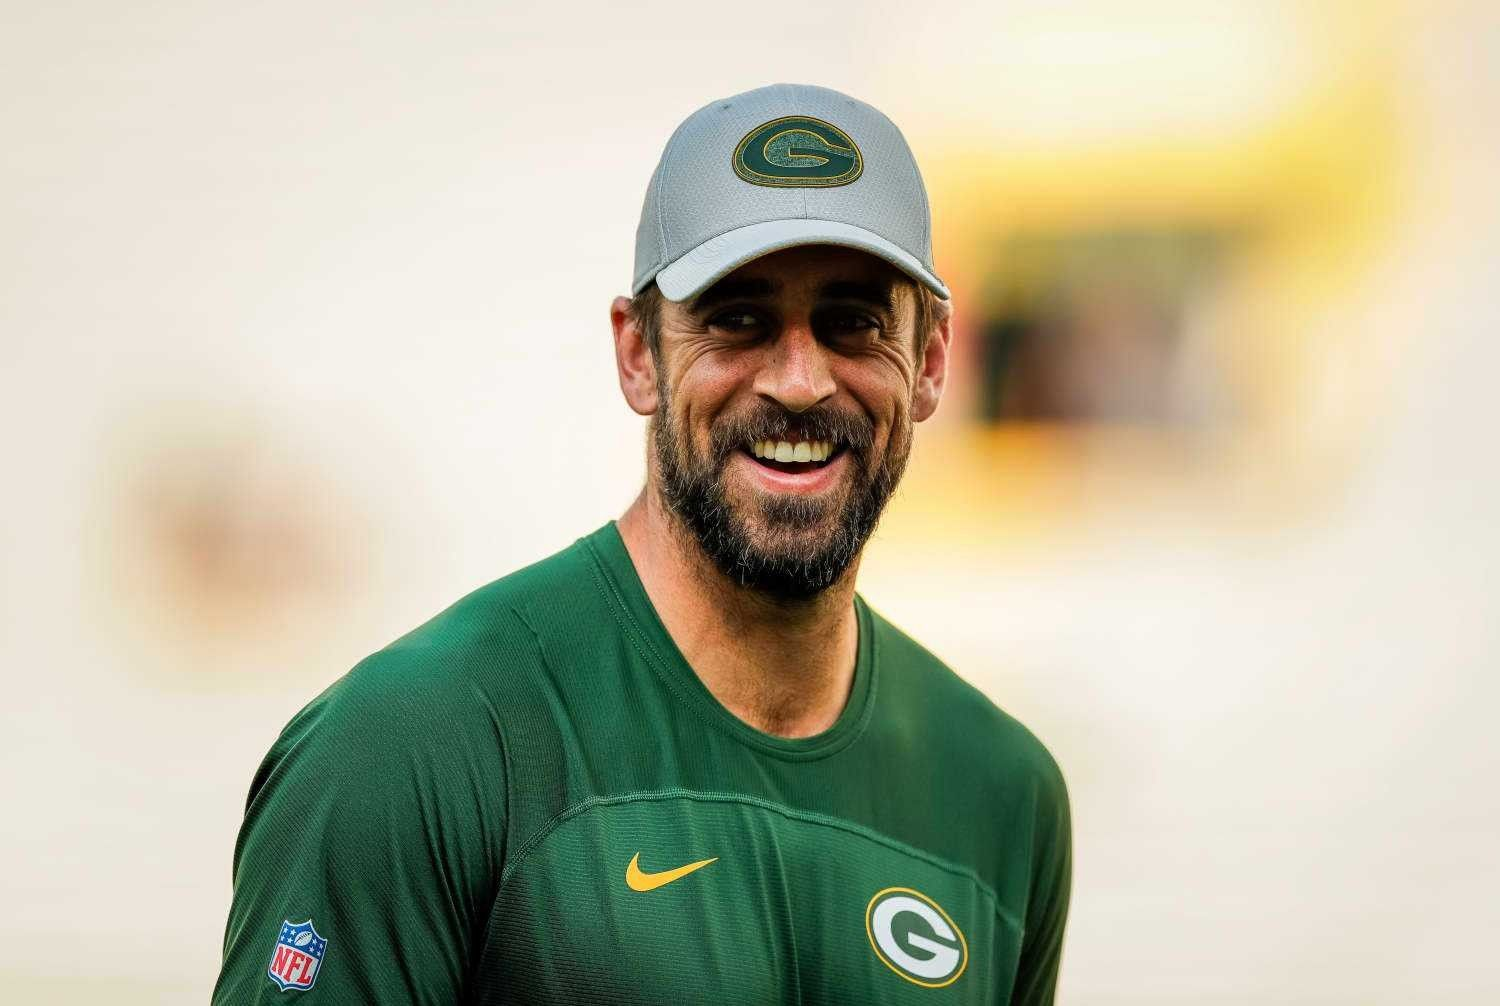 Pin By Zoe Sparks On Green Bay Packers Aaron Rogers Rodgers Packers Aaron Rodgers